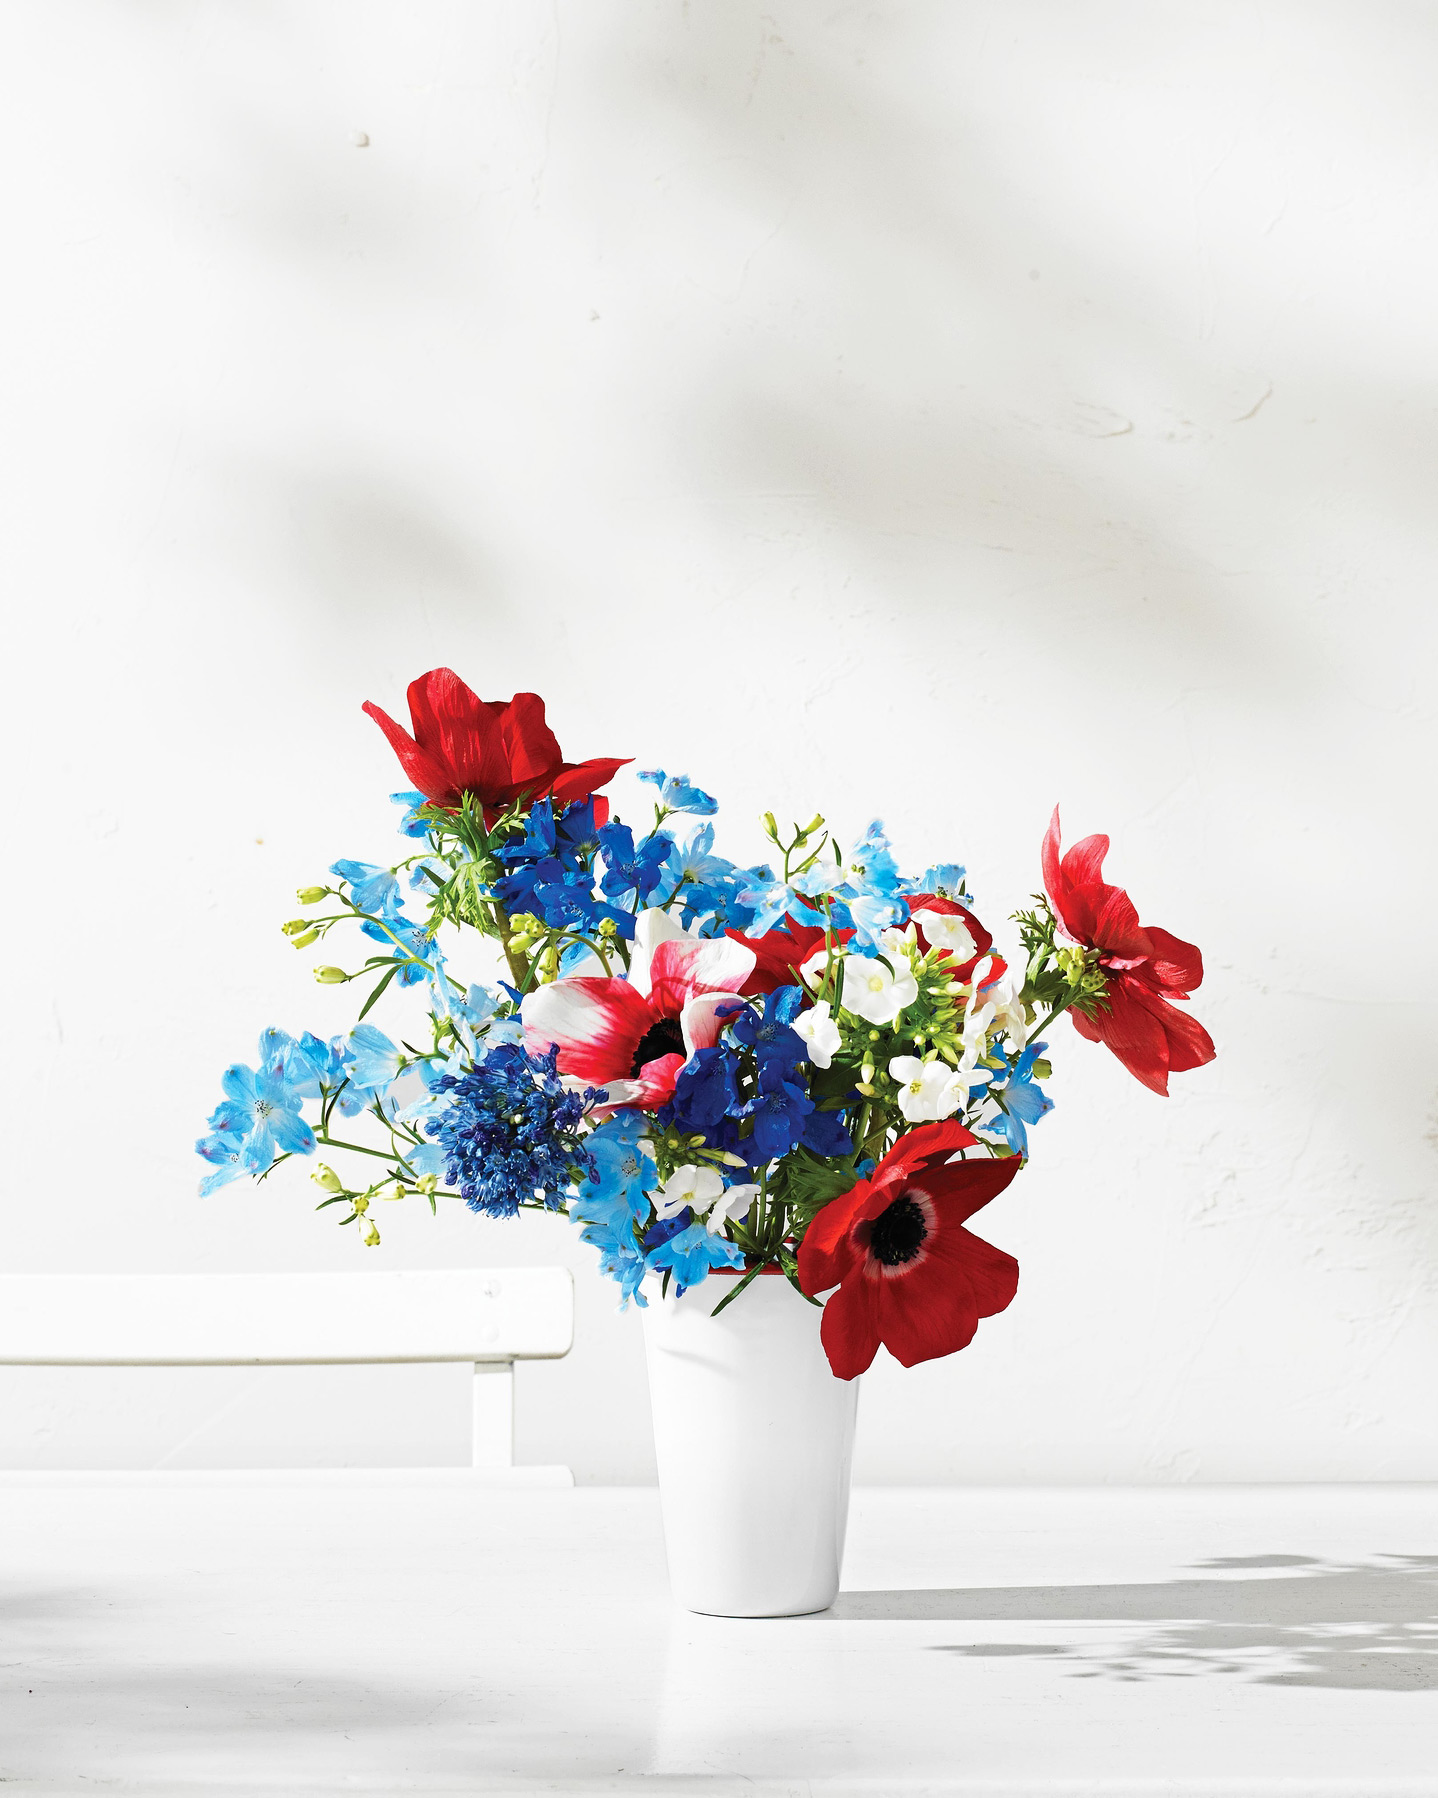 red-white-blue-arrangement-212-d112984.jpg